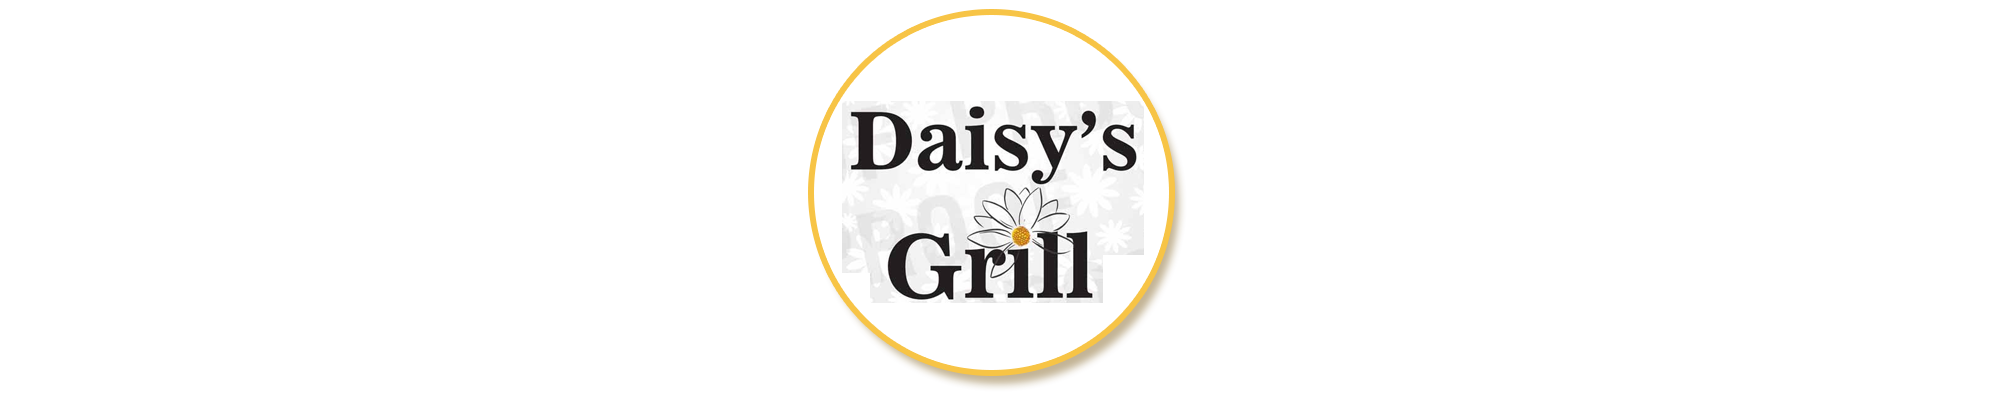 Welcome to Daisy's G